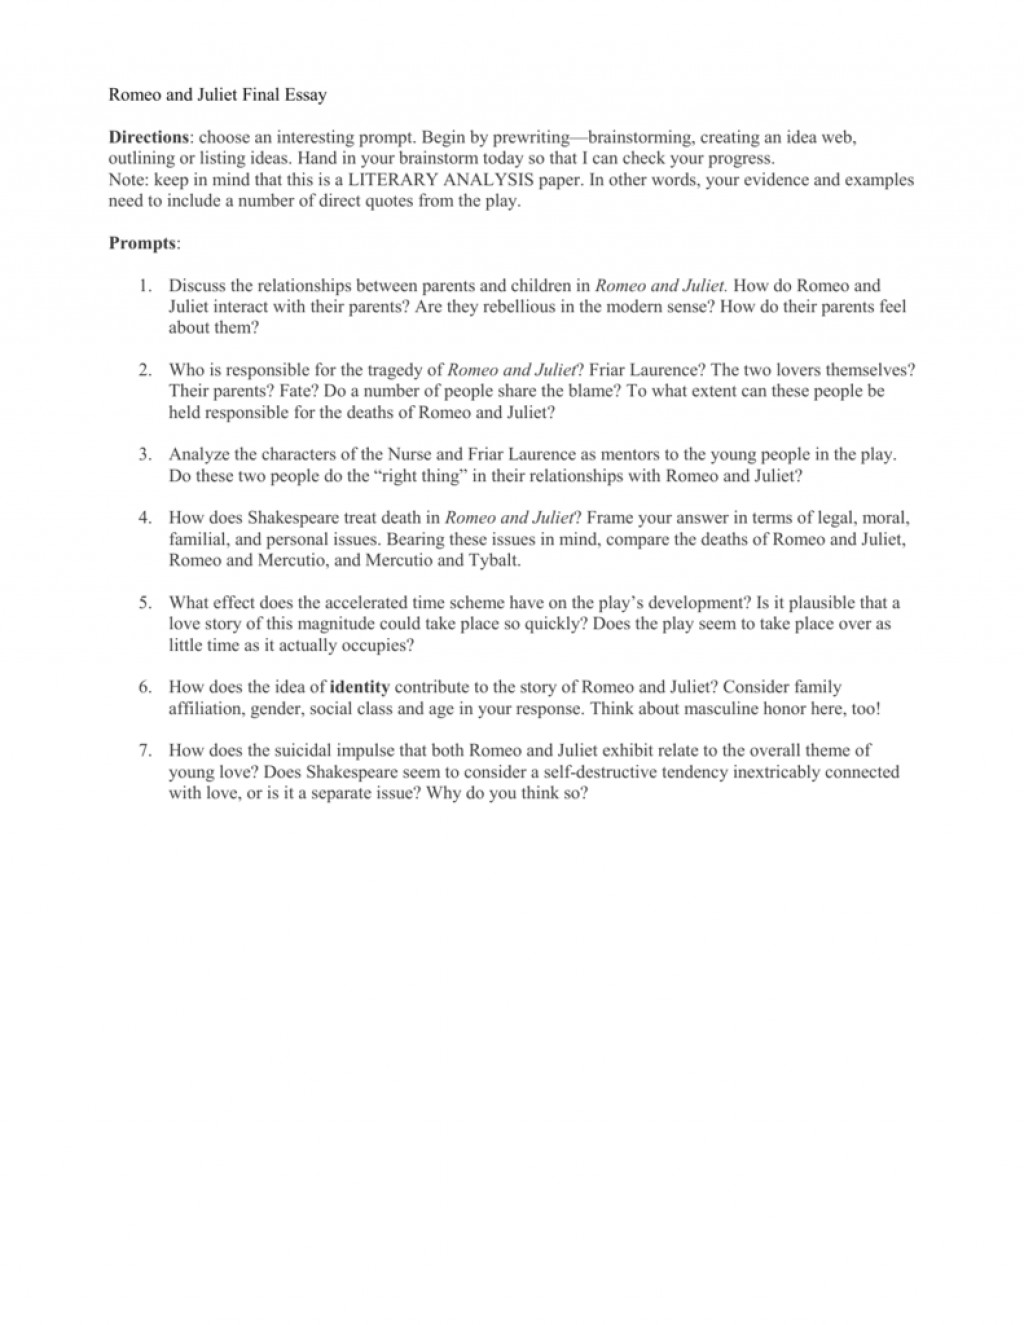 002 Romeo And Juliet Essay Topics 008016436 1 Astounding Pdf Questions Grade 10 Answers Large